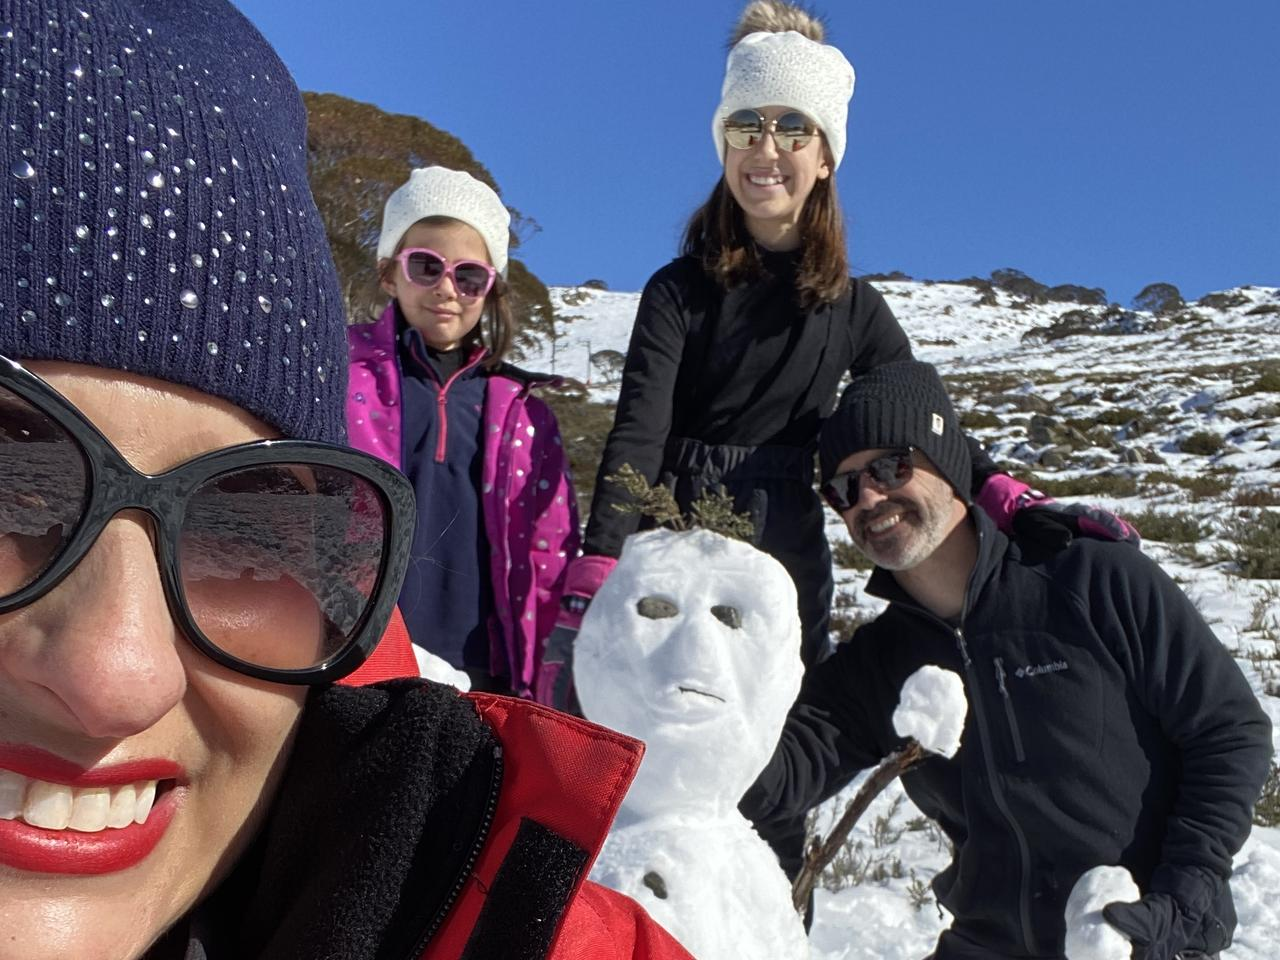 Dilvin Yasa builds a snomwan with her family at a ski field in News South Wales.